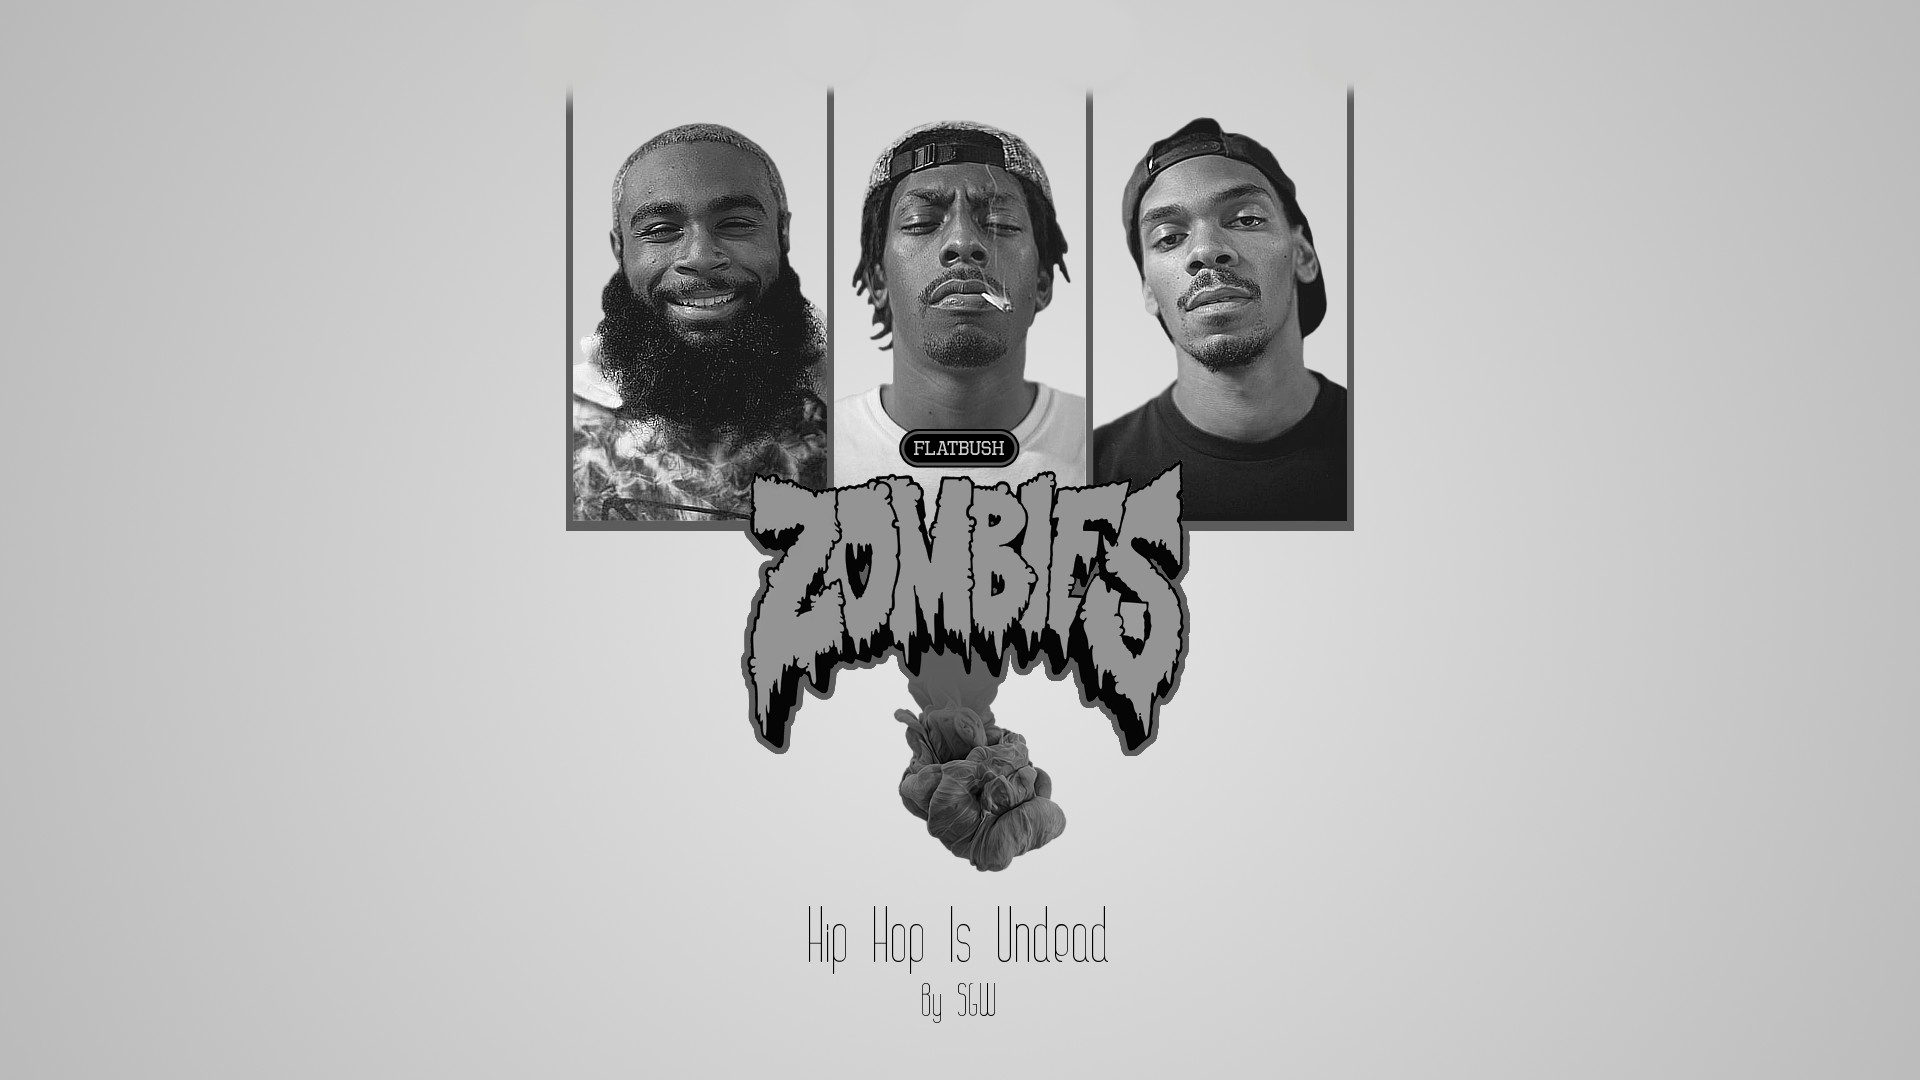 1920x1080 JoakimRiise 0 FlatBush Zombies GrayScale Wallpaper By